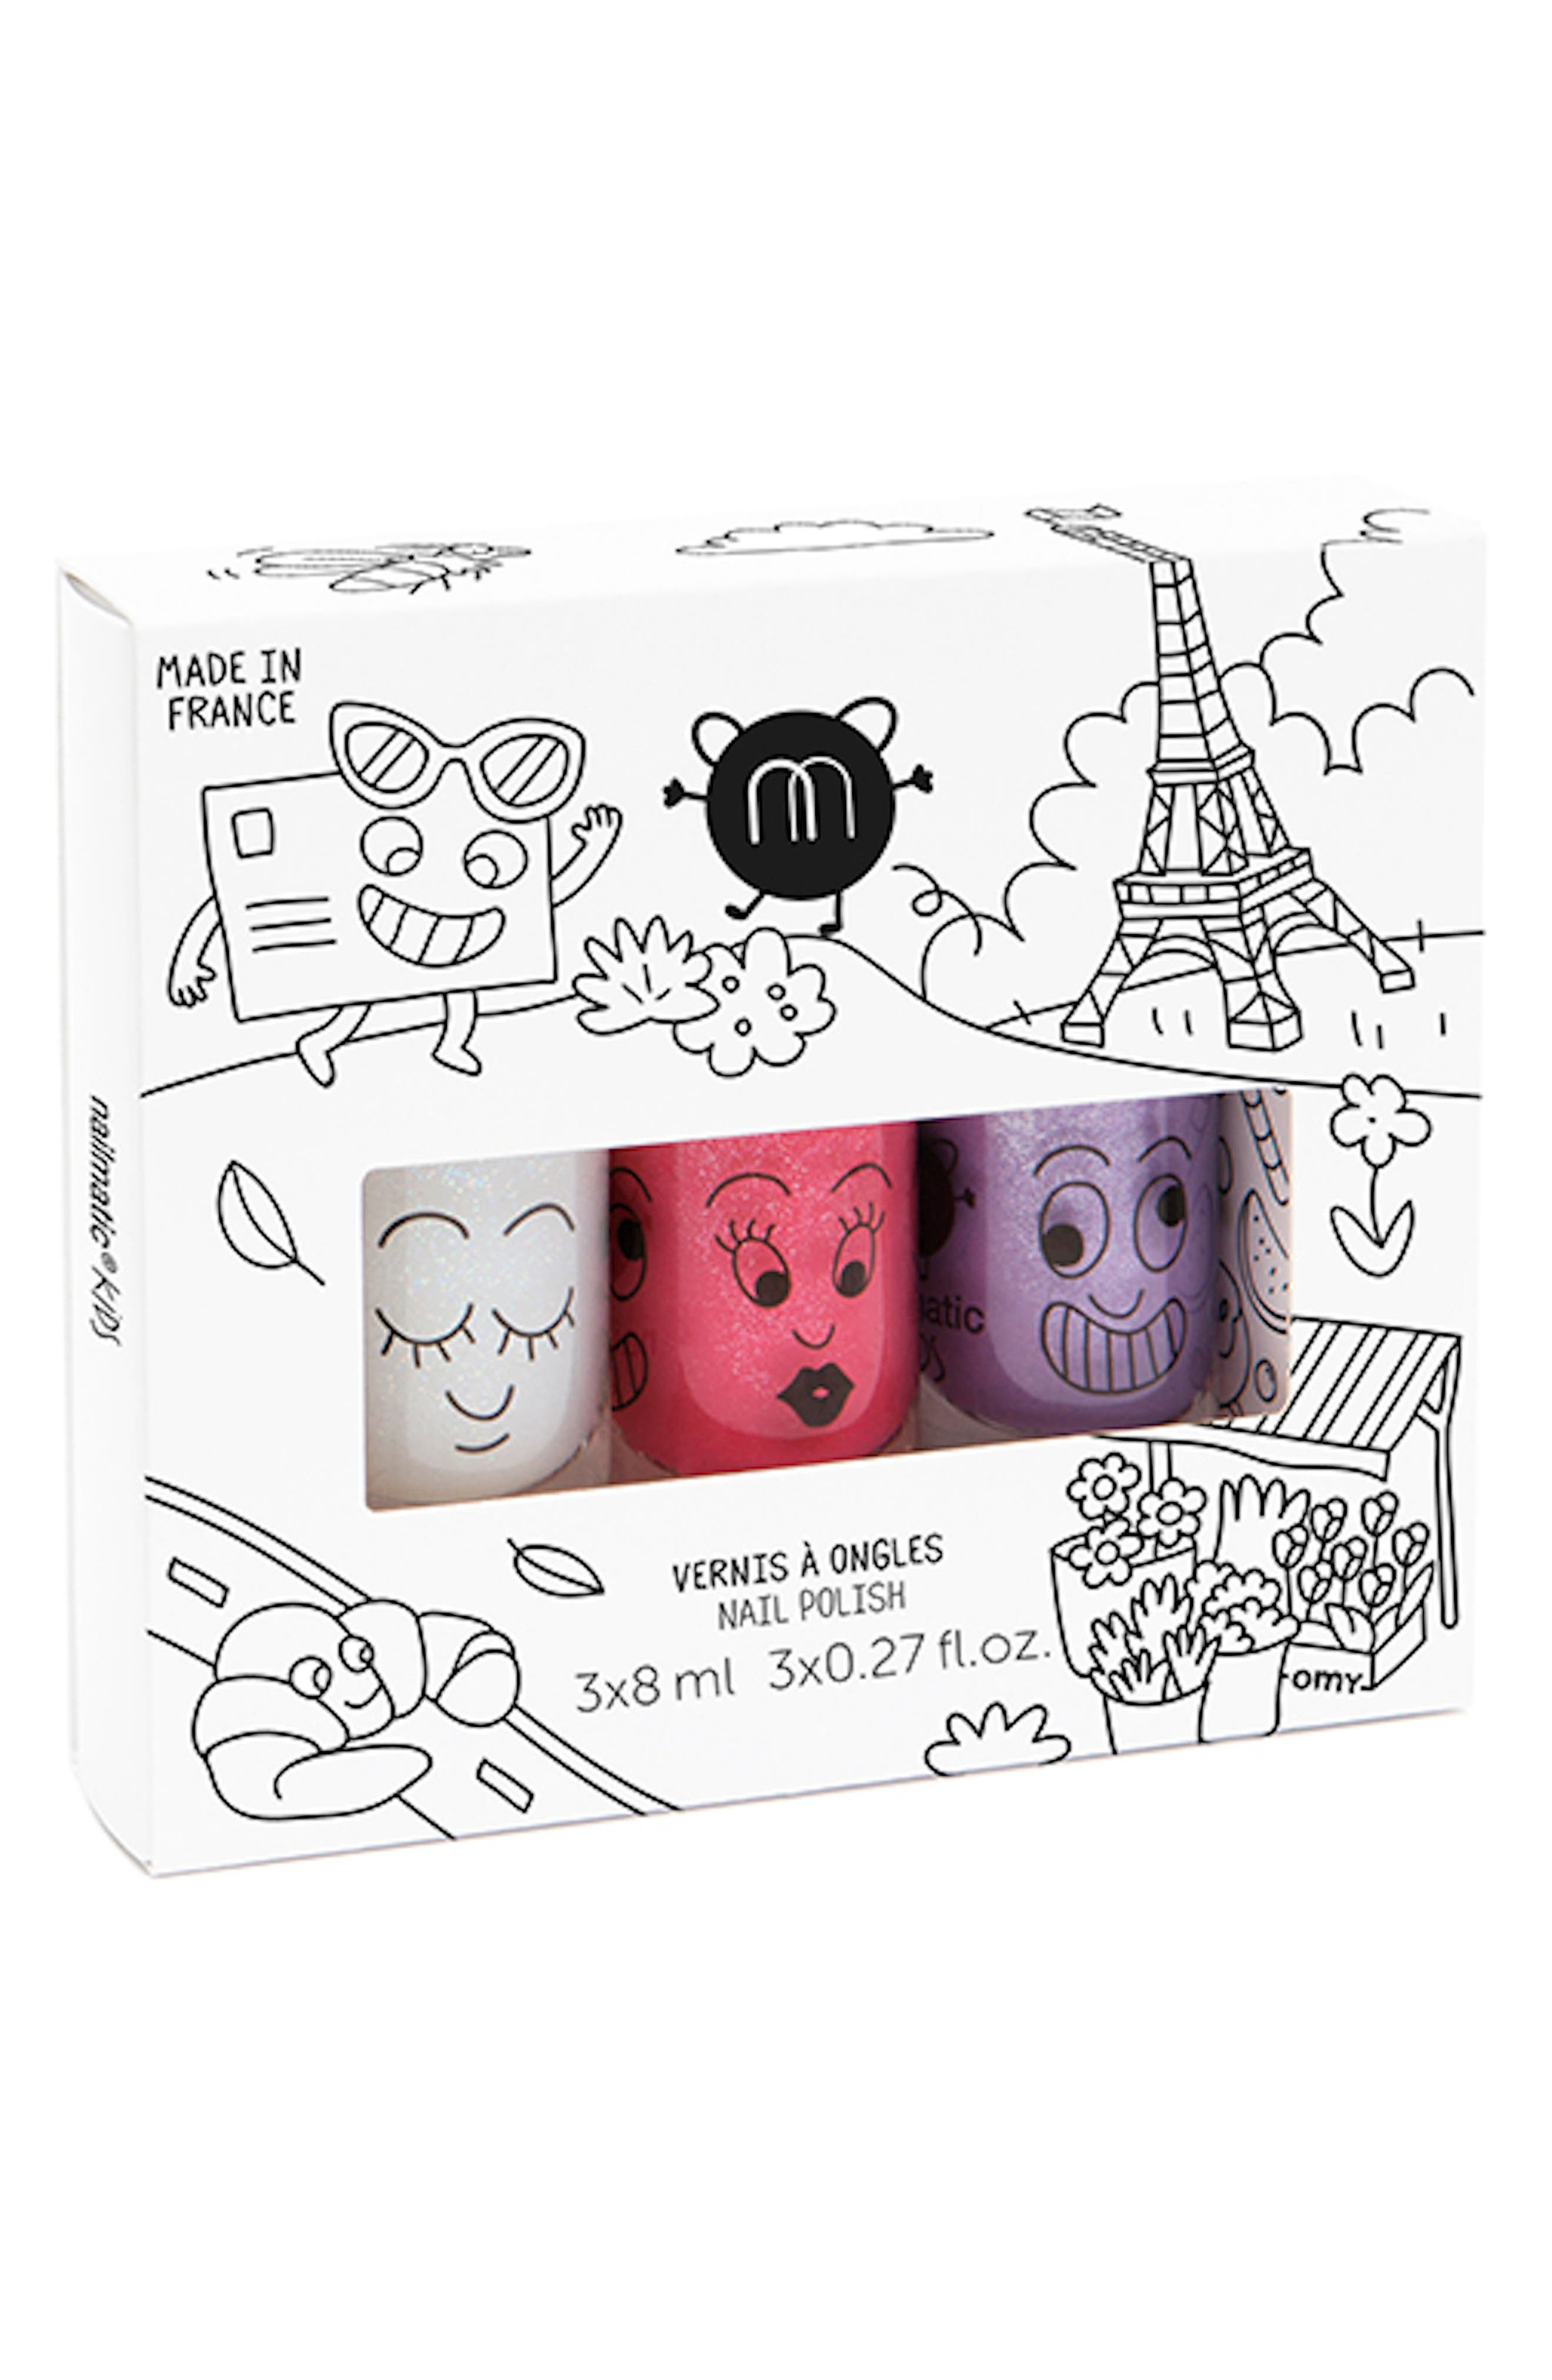 Water-based nail polish in bright colors lets your little fashionista paint her fingernails just like Mom without worry about stains from accidental spills or need for pungent polish removers. Dermatologist-tested, it\\\'s formulated just for kids and easily washes off with soap and water. Style Name: Nailmatic Water-Based Nail Polish Set (Girls). Style Number: 5450505 2. Available in stores.